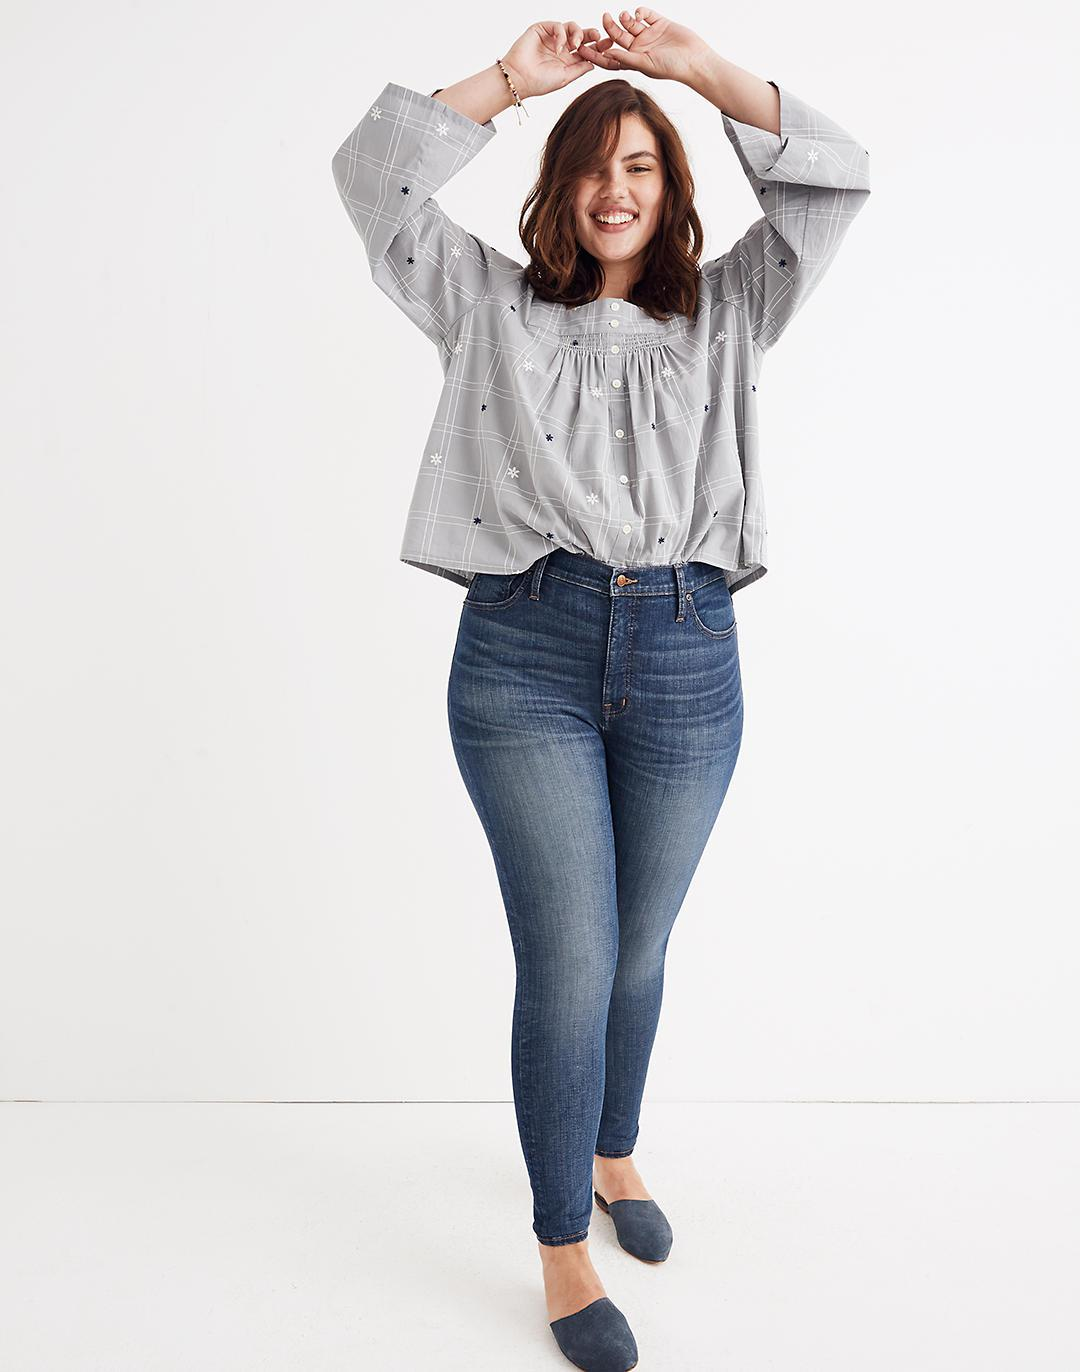 High-Rise Skinny Jeans: Adjustable Edition (Sizes 33-37)